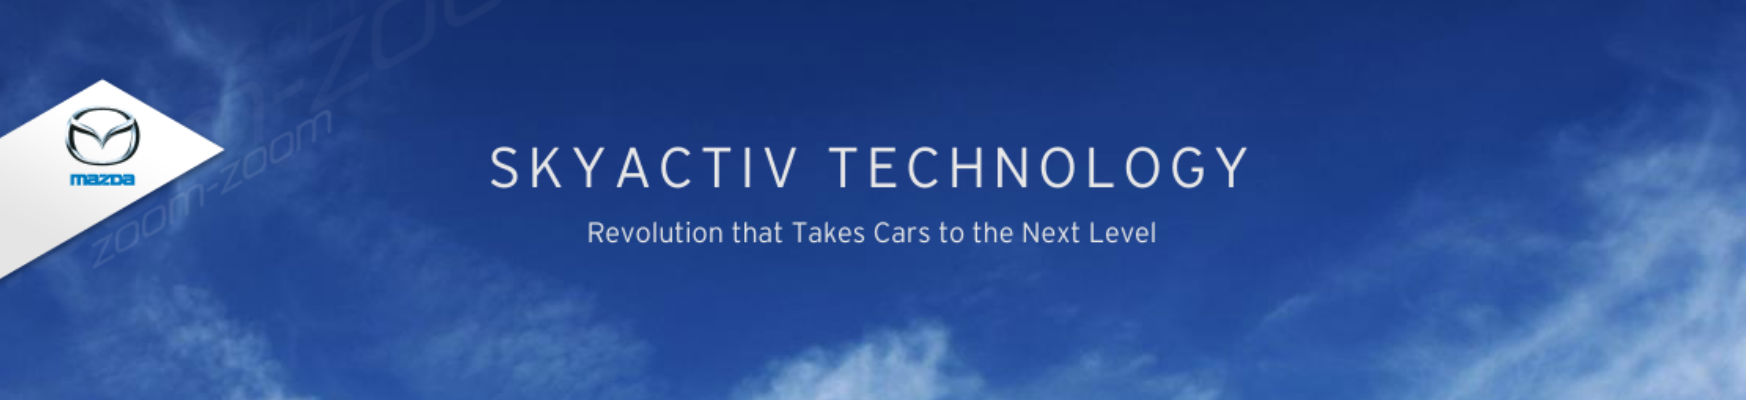 Cars with Skyactiv Technology